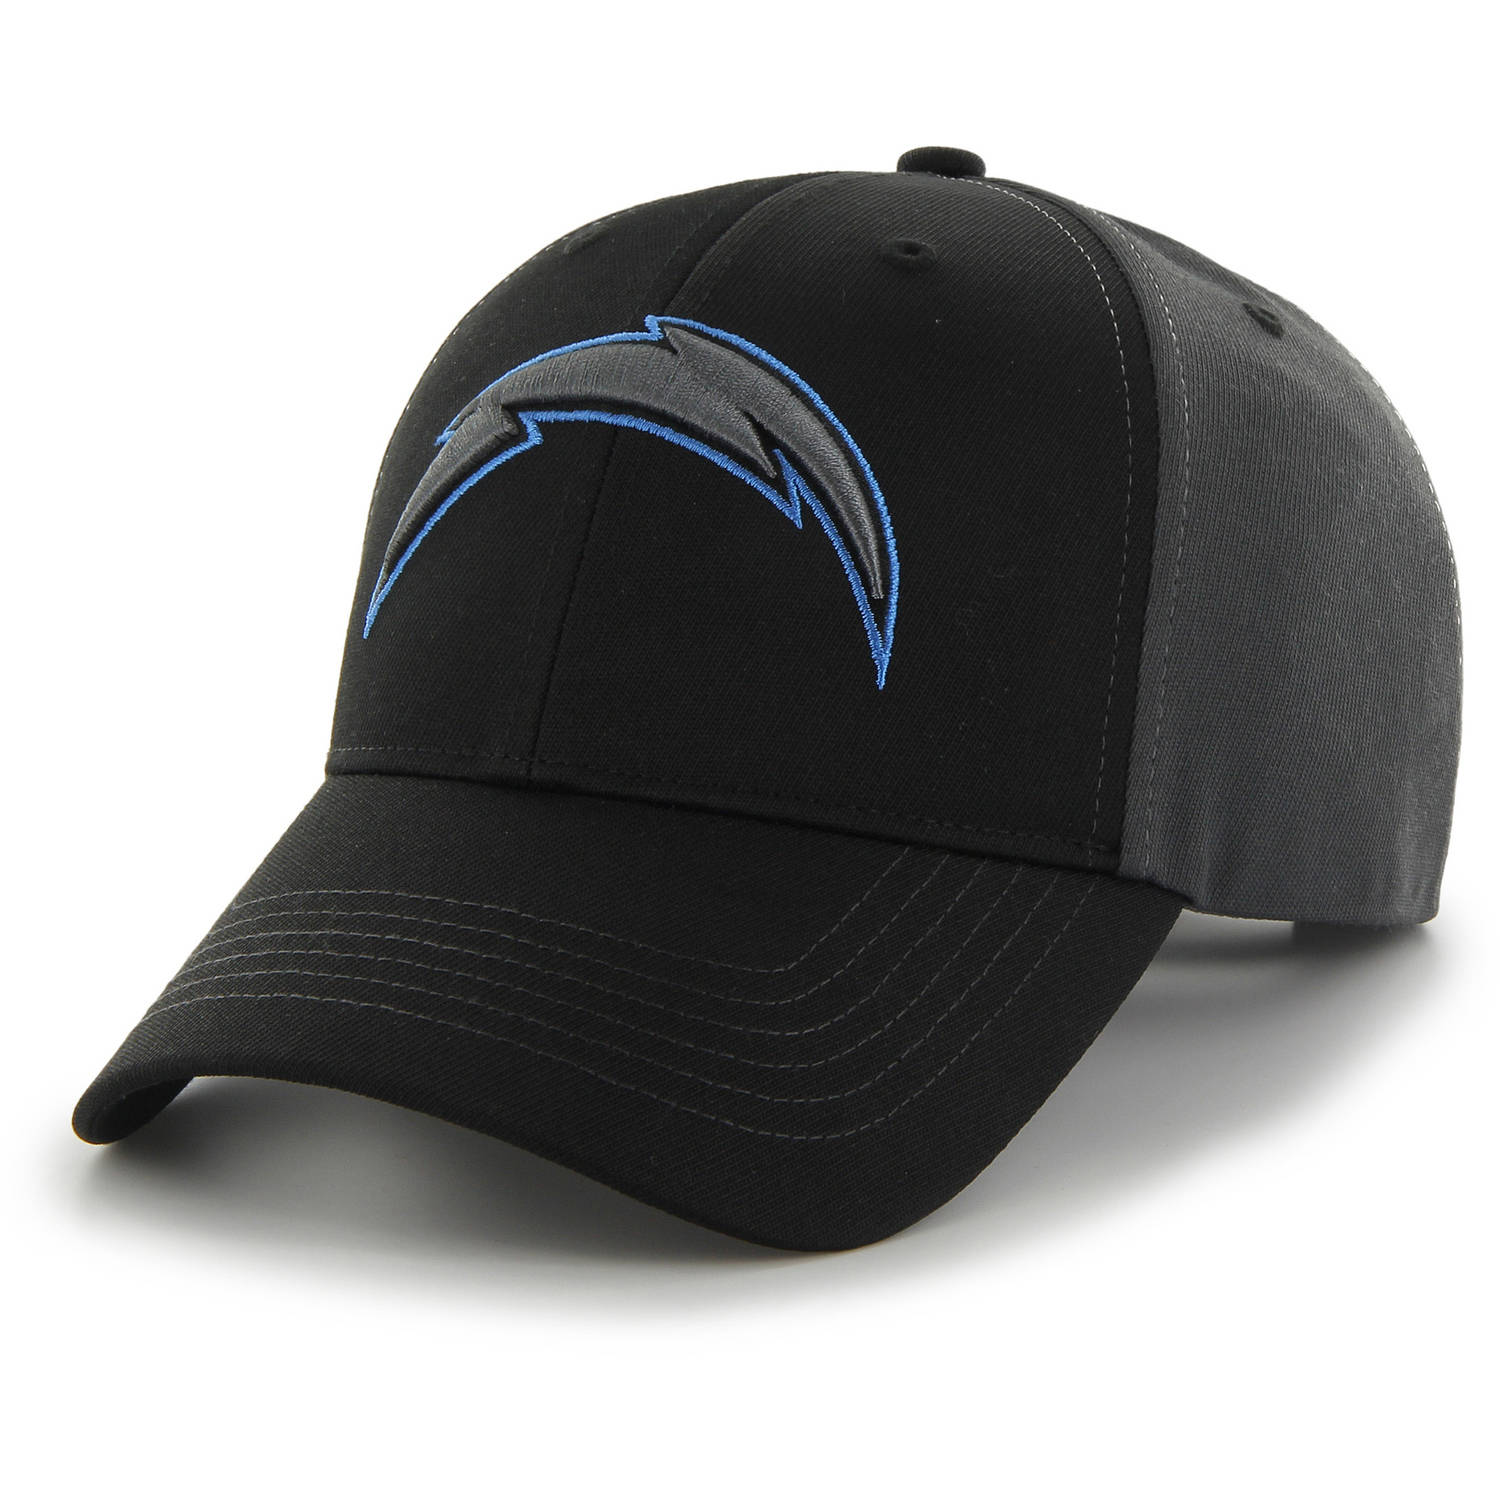 NFL Los Angeles Chargers Mass Blackball Cap - Fan Favorite